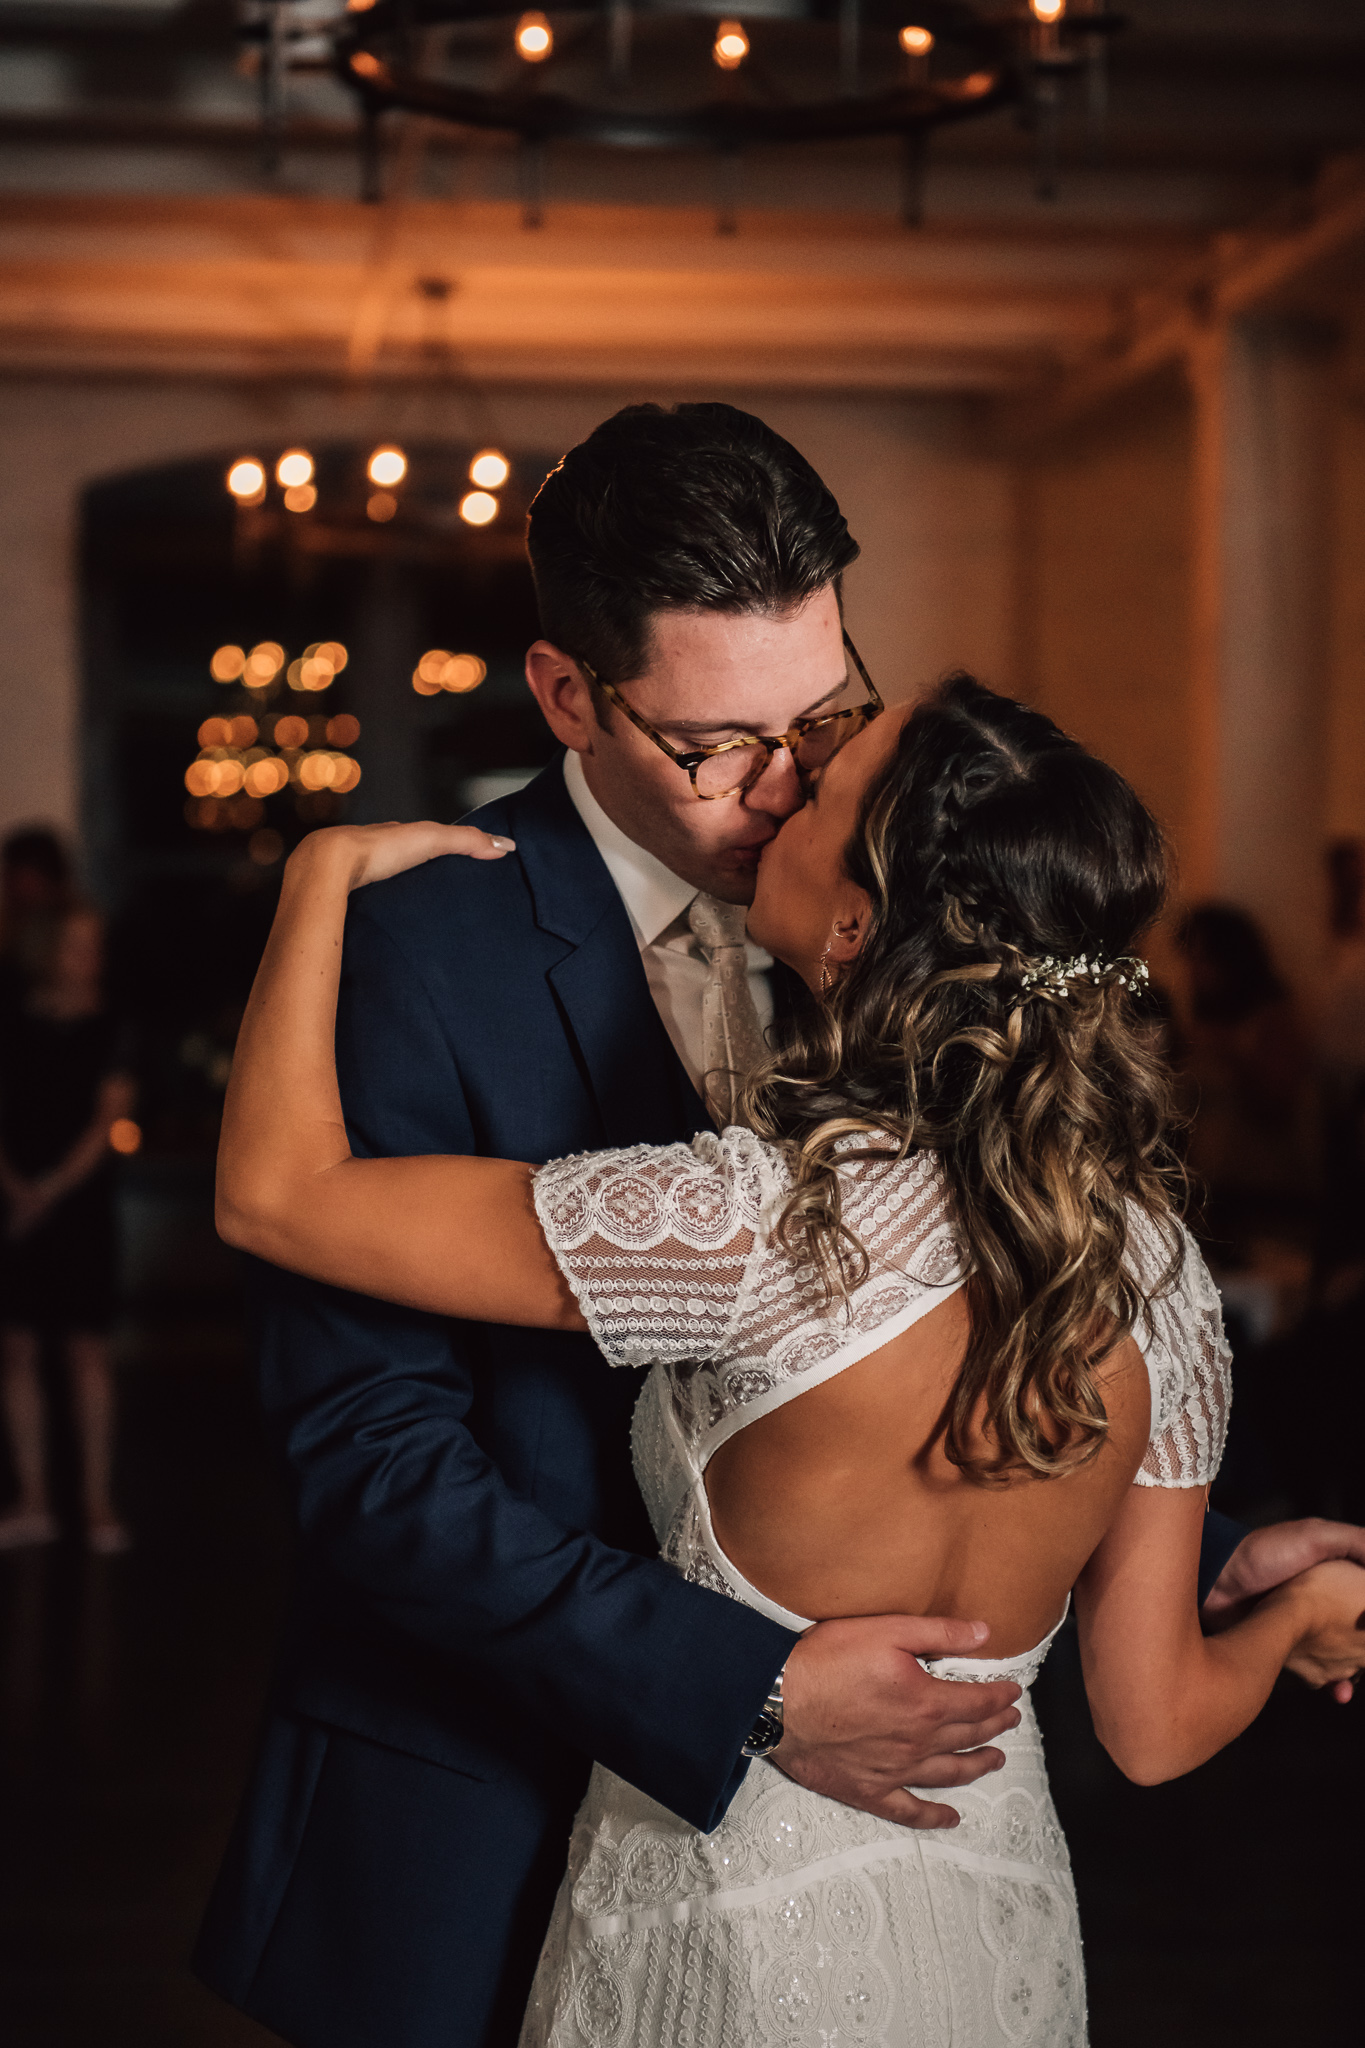 20180915wedding-kyler-michaela-859.jpg